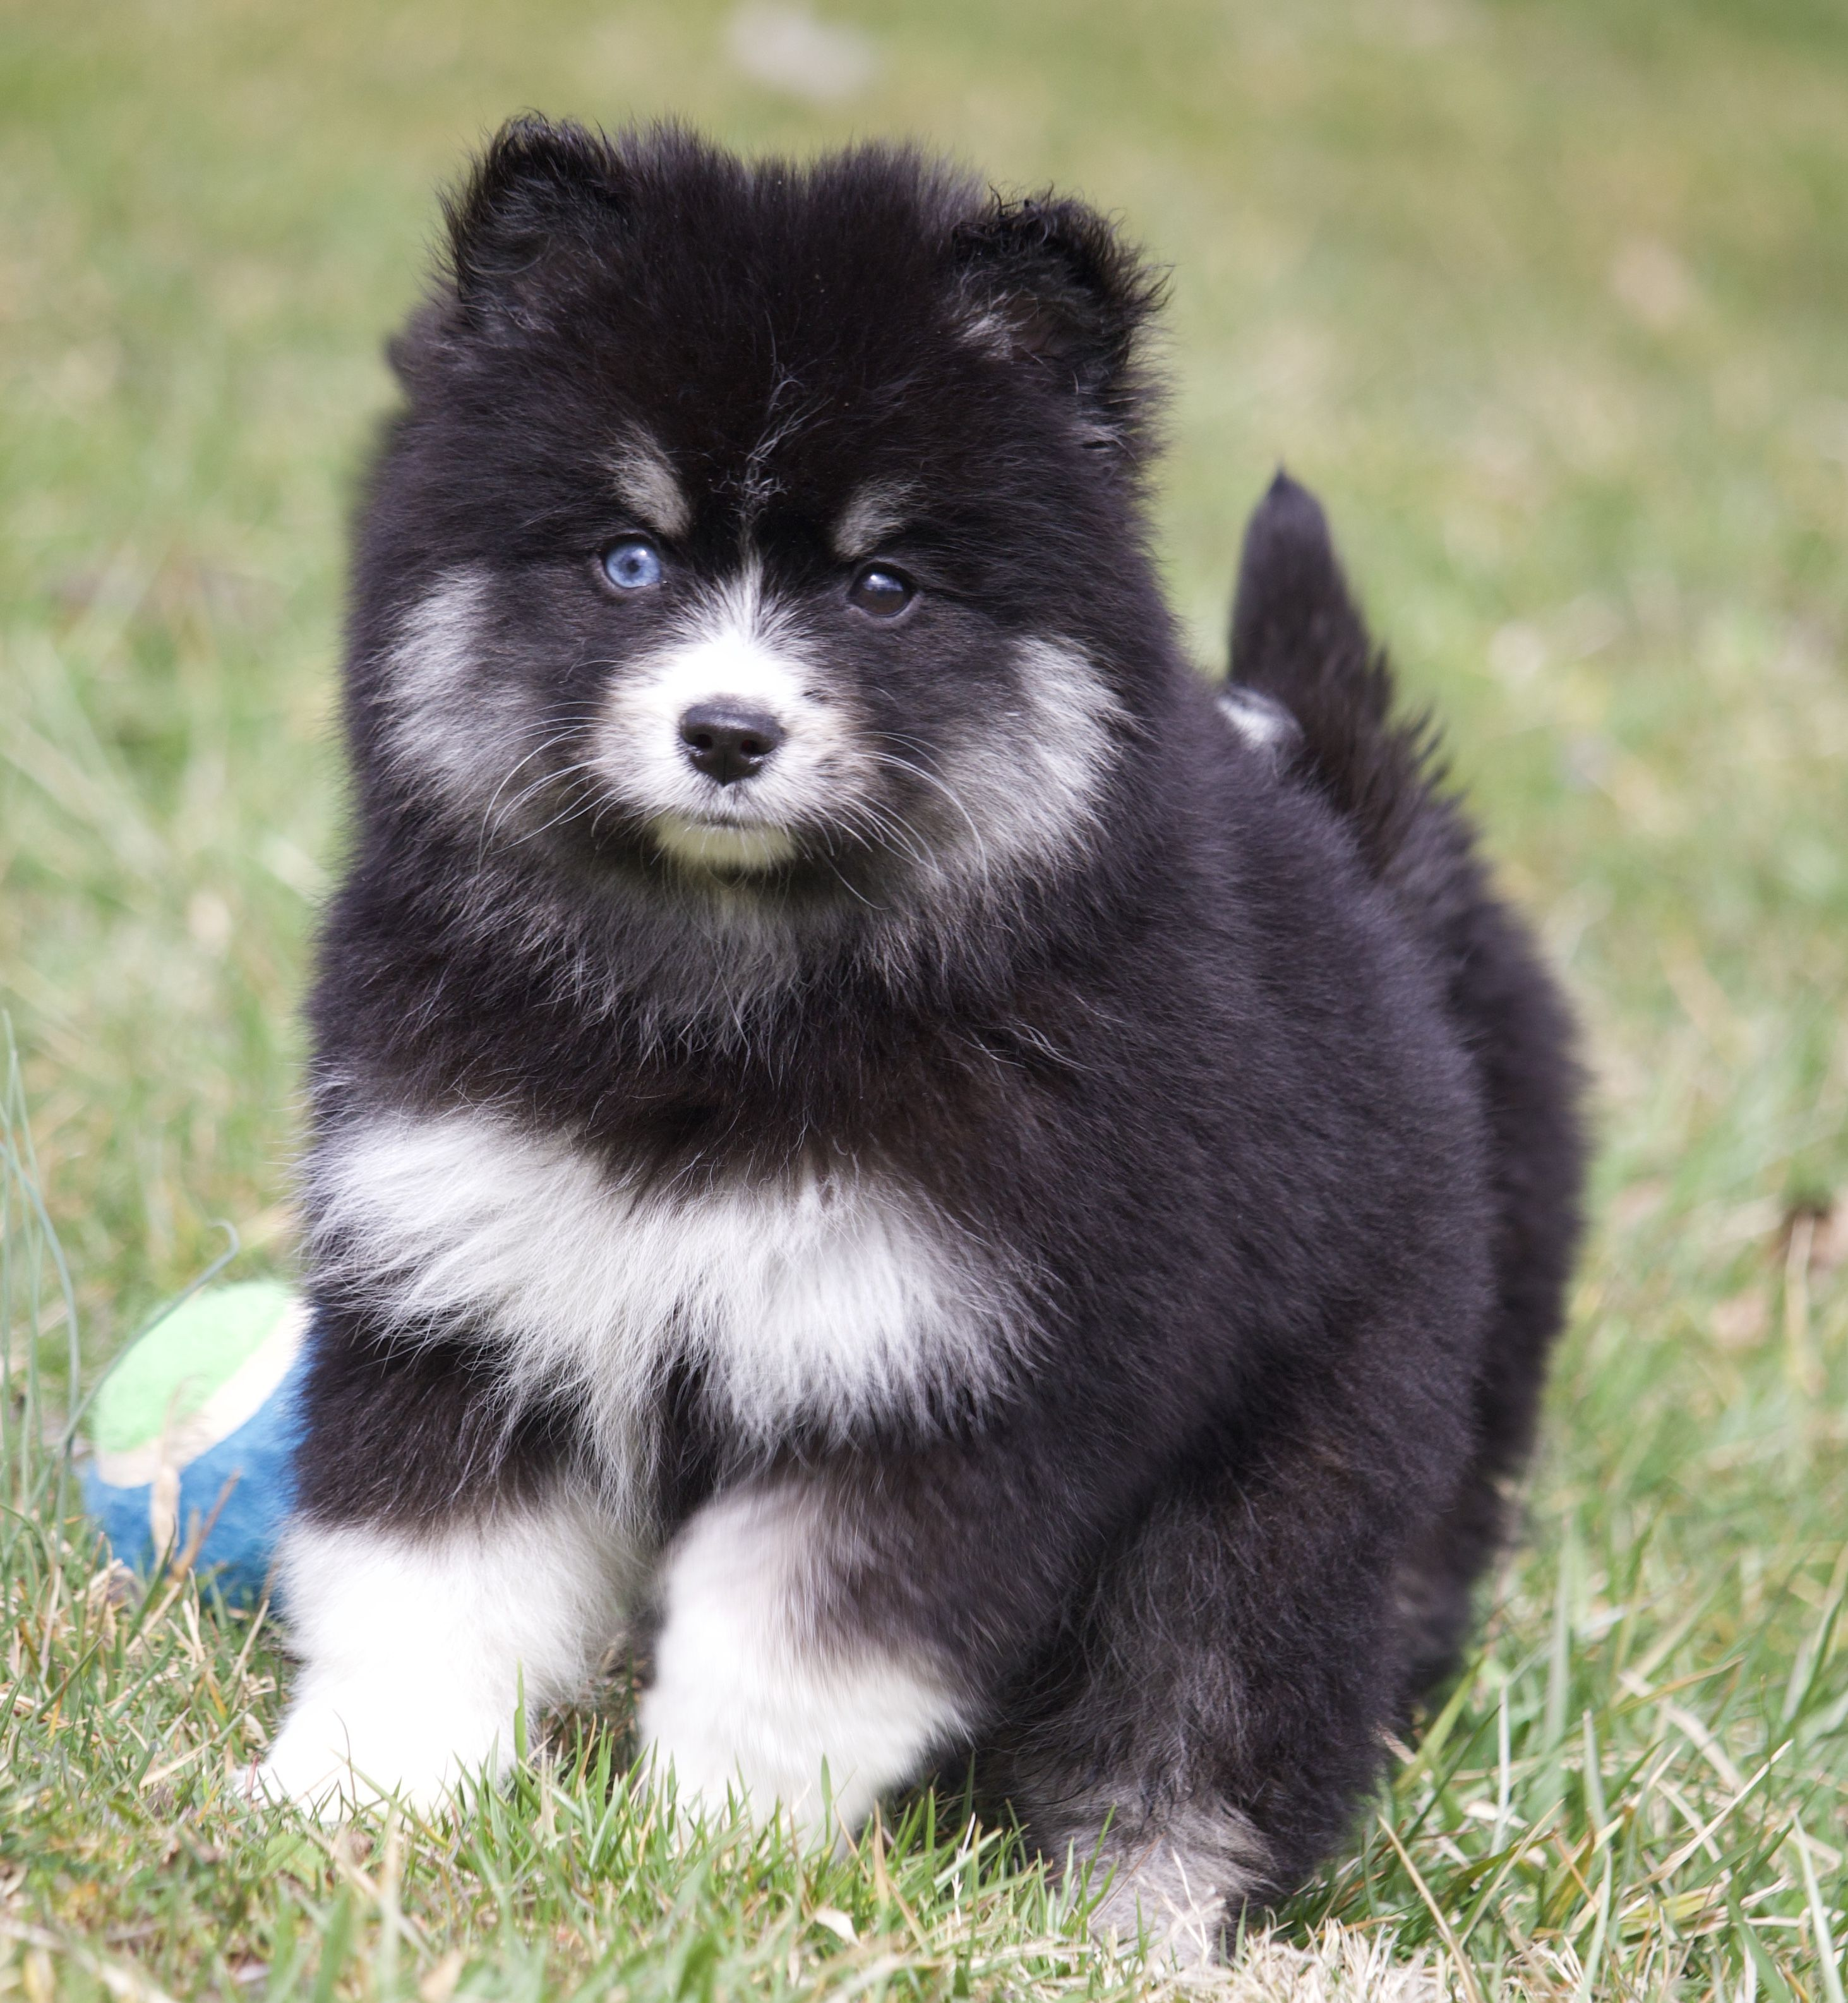 Cutenessoverload Super Cute Pomsky Puppies Are Energetic And Playful Dogs That Love To Romp And Play Fetc In 2020 Pomsky Puppies Cute Baby Animals Puppies